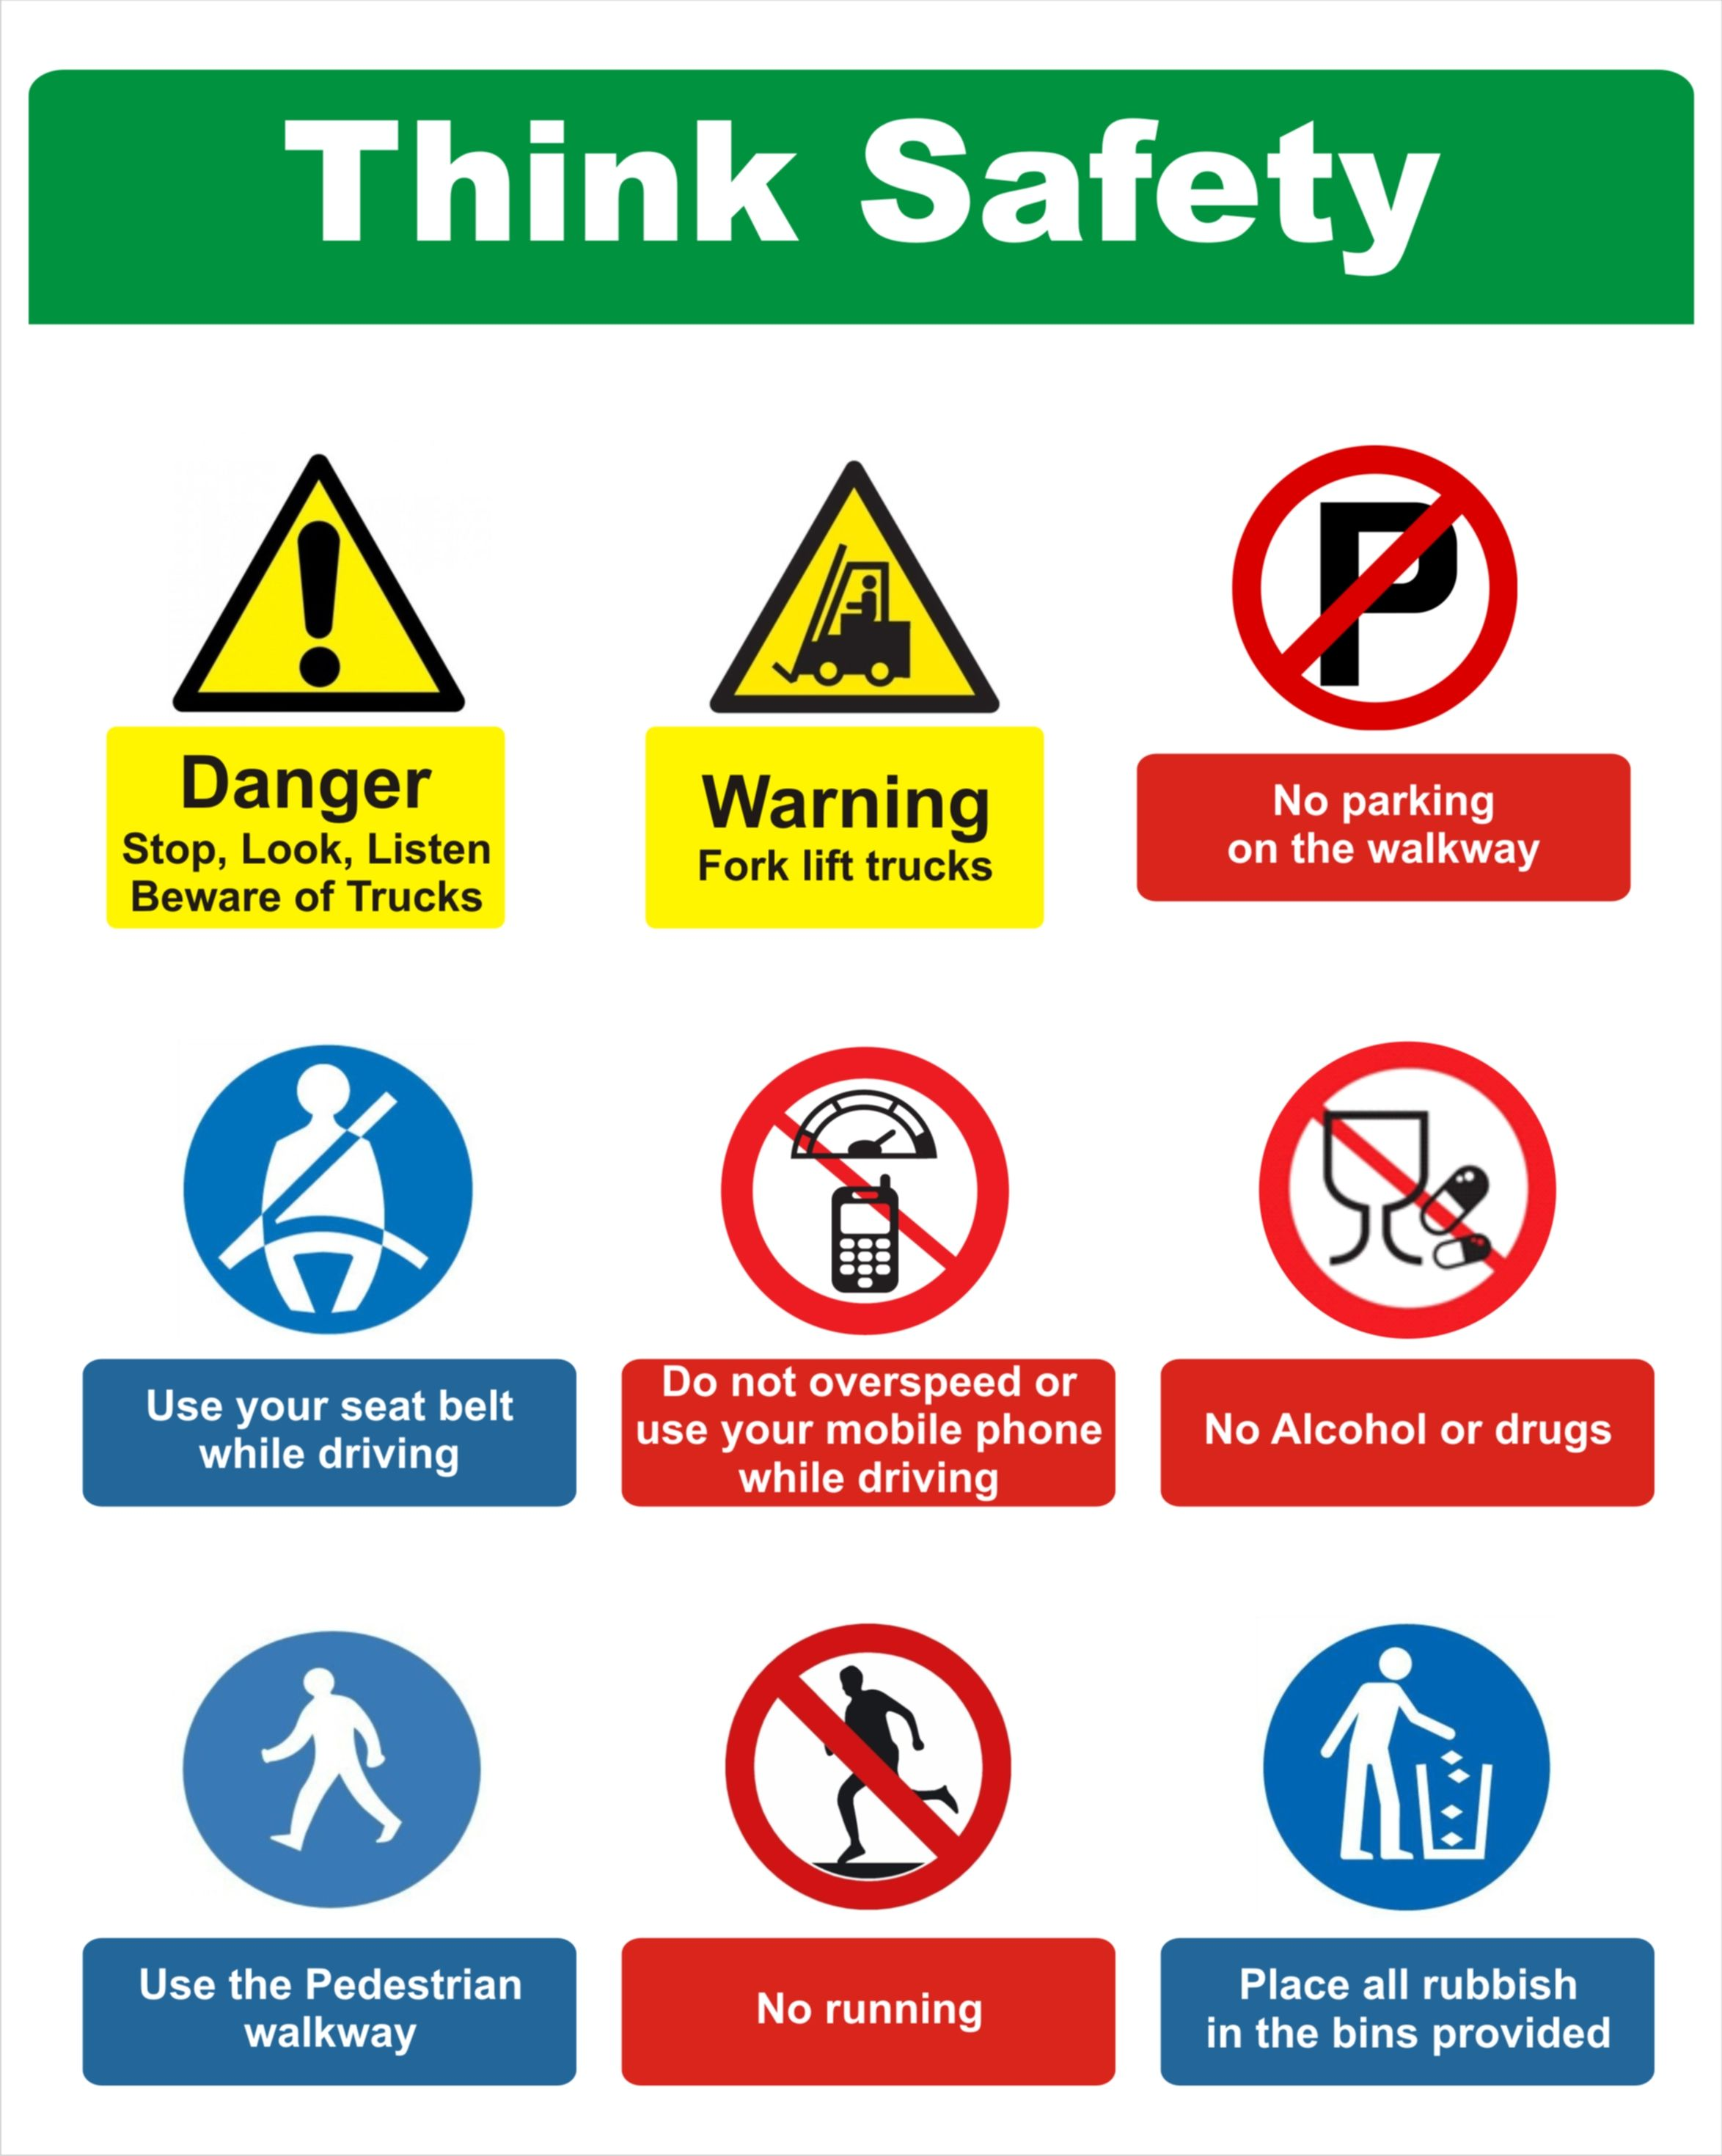 health and safety - working in hazardous environment essay It aims an adaptation of working environment  occupational health and safety practice in  occupational factors and conditions hazardous to health and safety at.